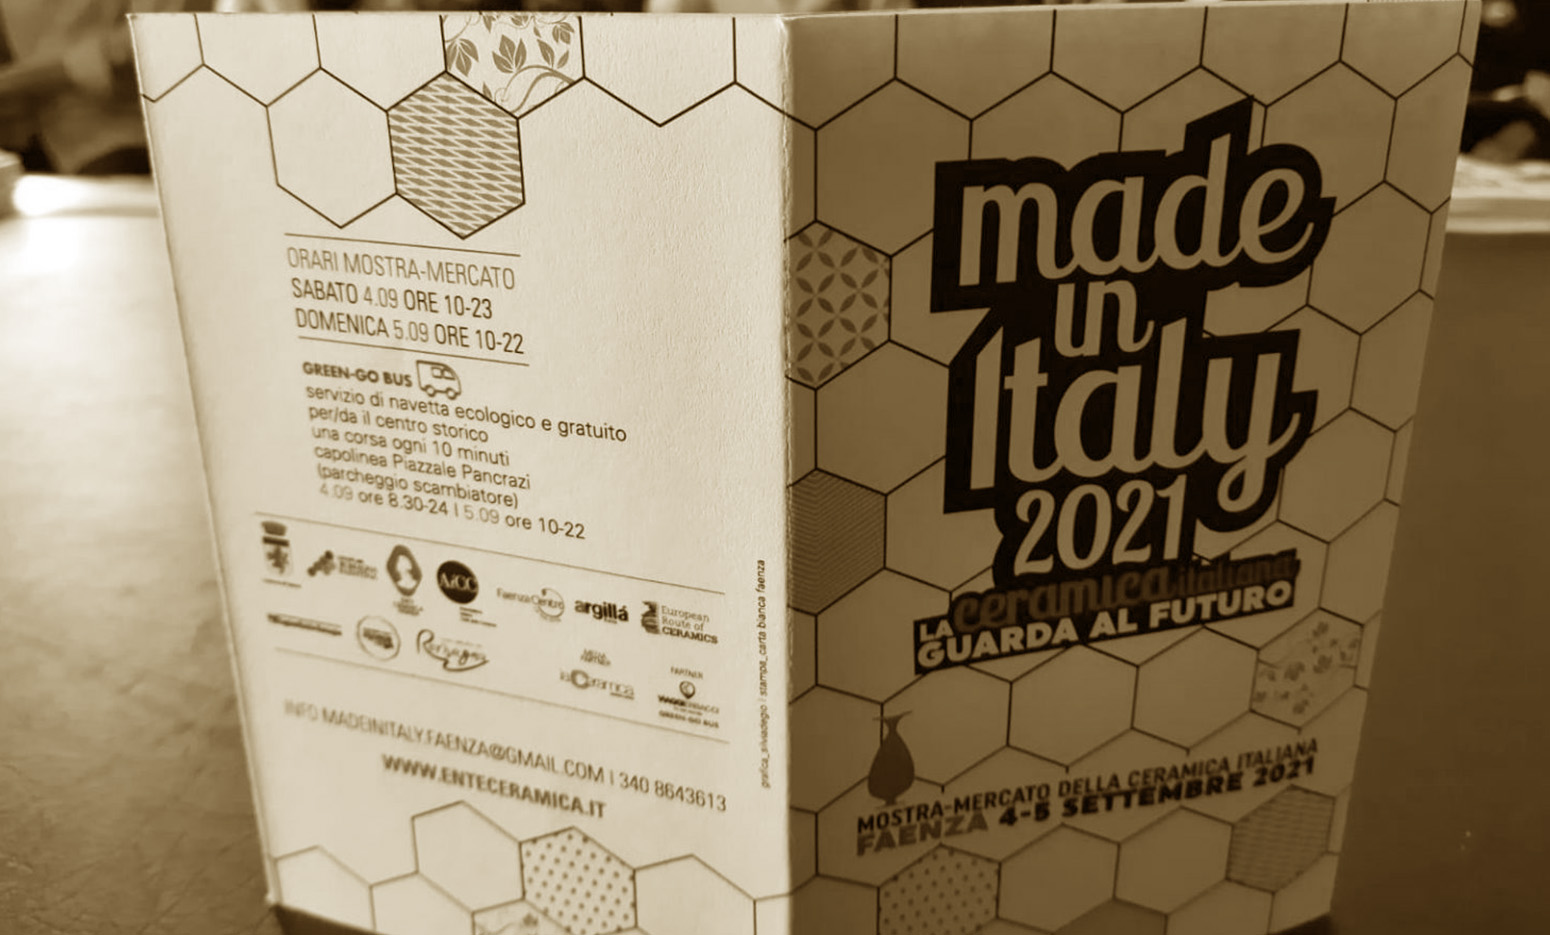 made in italy 21